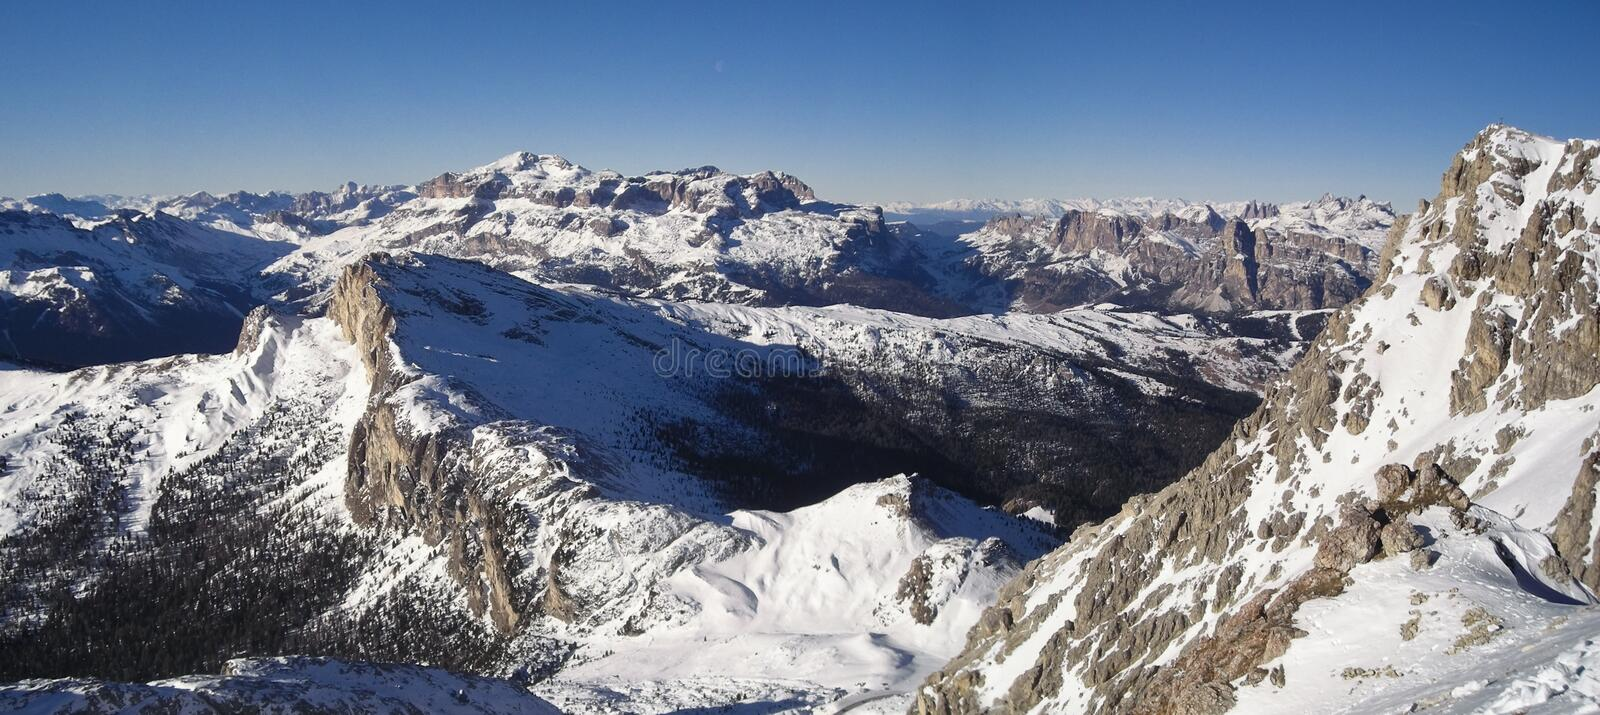 Snow covered mountaintops. Winter view of mountain landscape from the top of Lagazuoi in a sunny day - Dolomites, Italy 2007 royalty free stock images